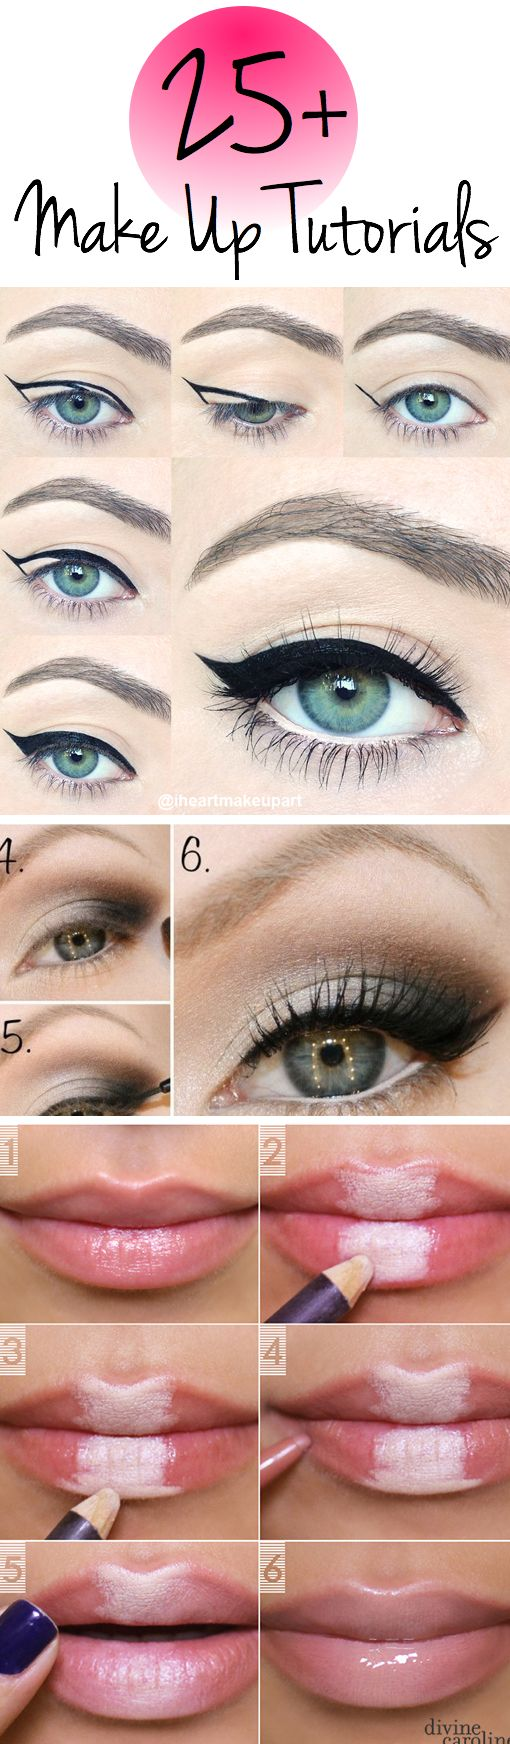 How To Apply Eyeliner Video In Hindi Intense Eye Makeup Tutorial Images  Free Download Download